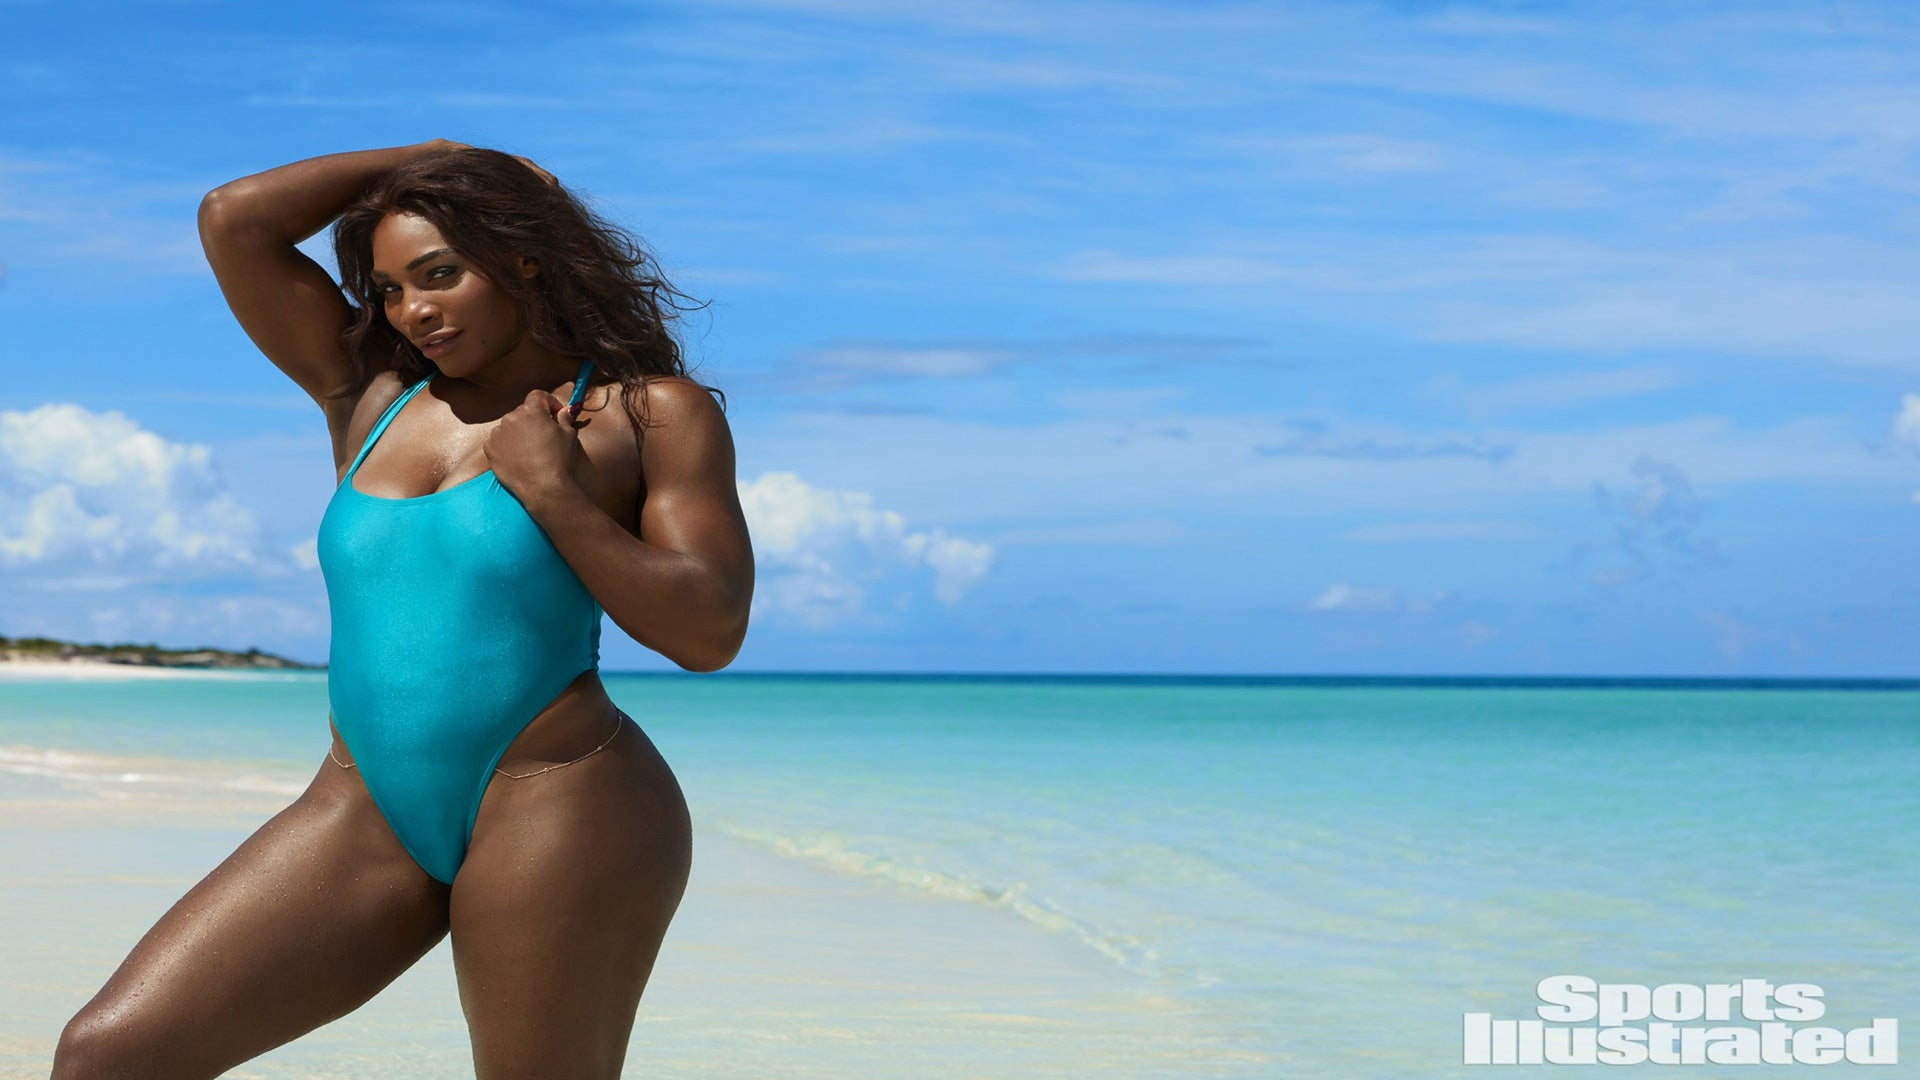 Serena Williams Dares to Bare in Sports Illustrated Swim Shoot: 'I've Never Worn a Thong Bikini Before – Now I'm a Thong Girl'